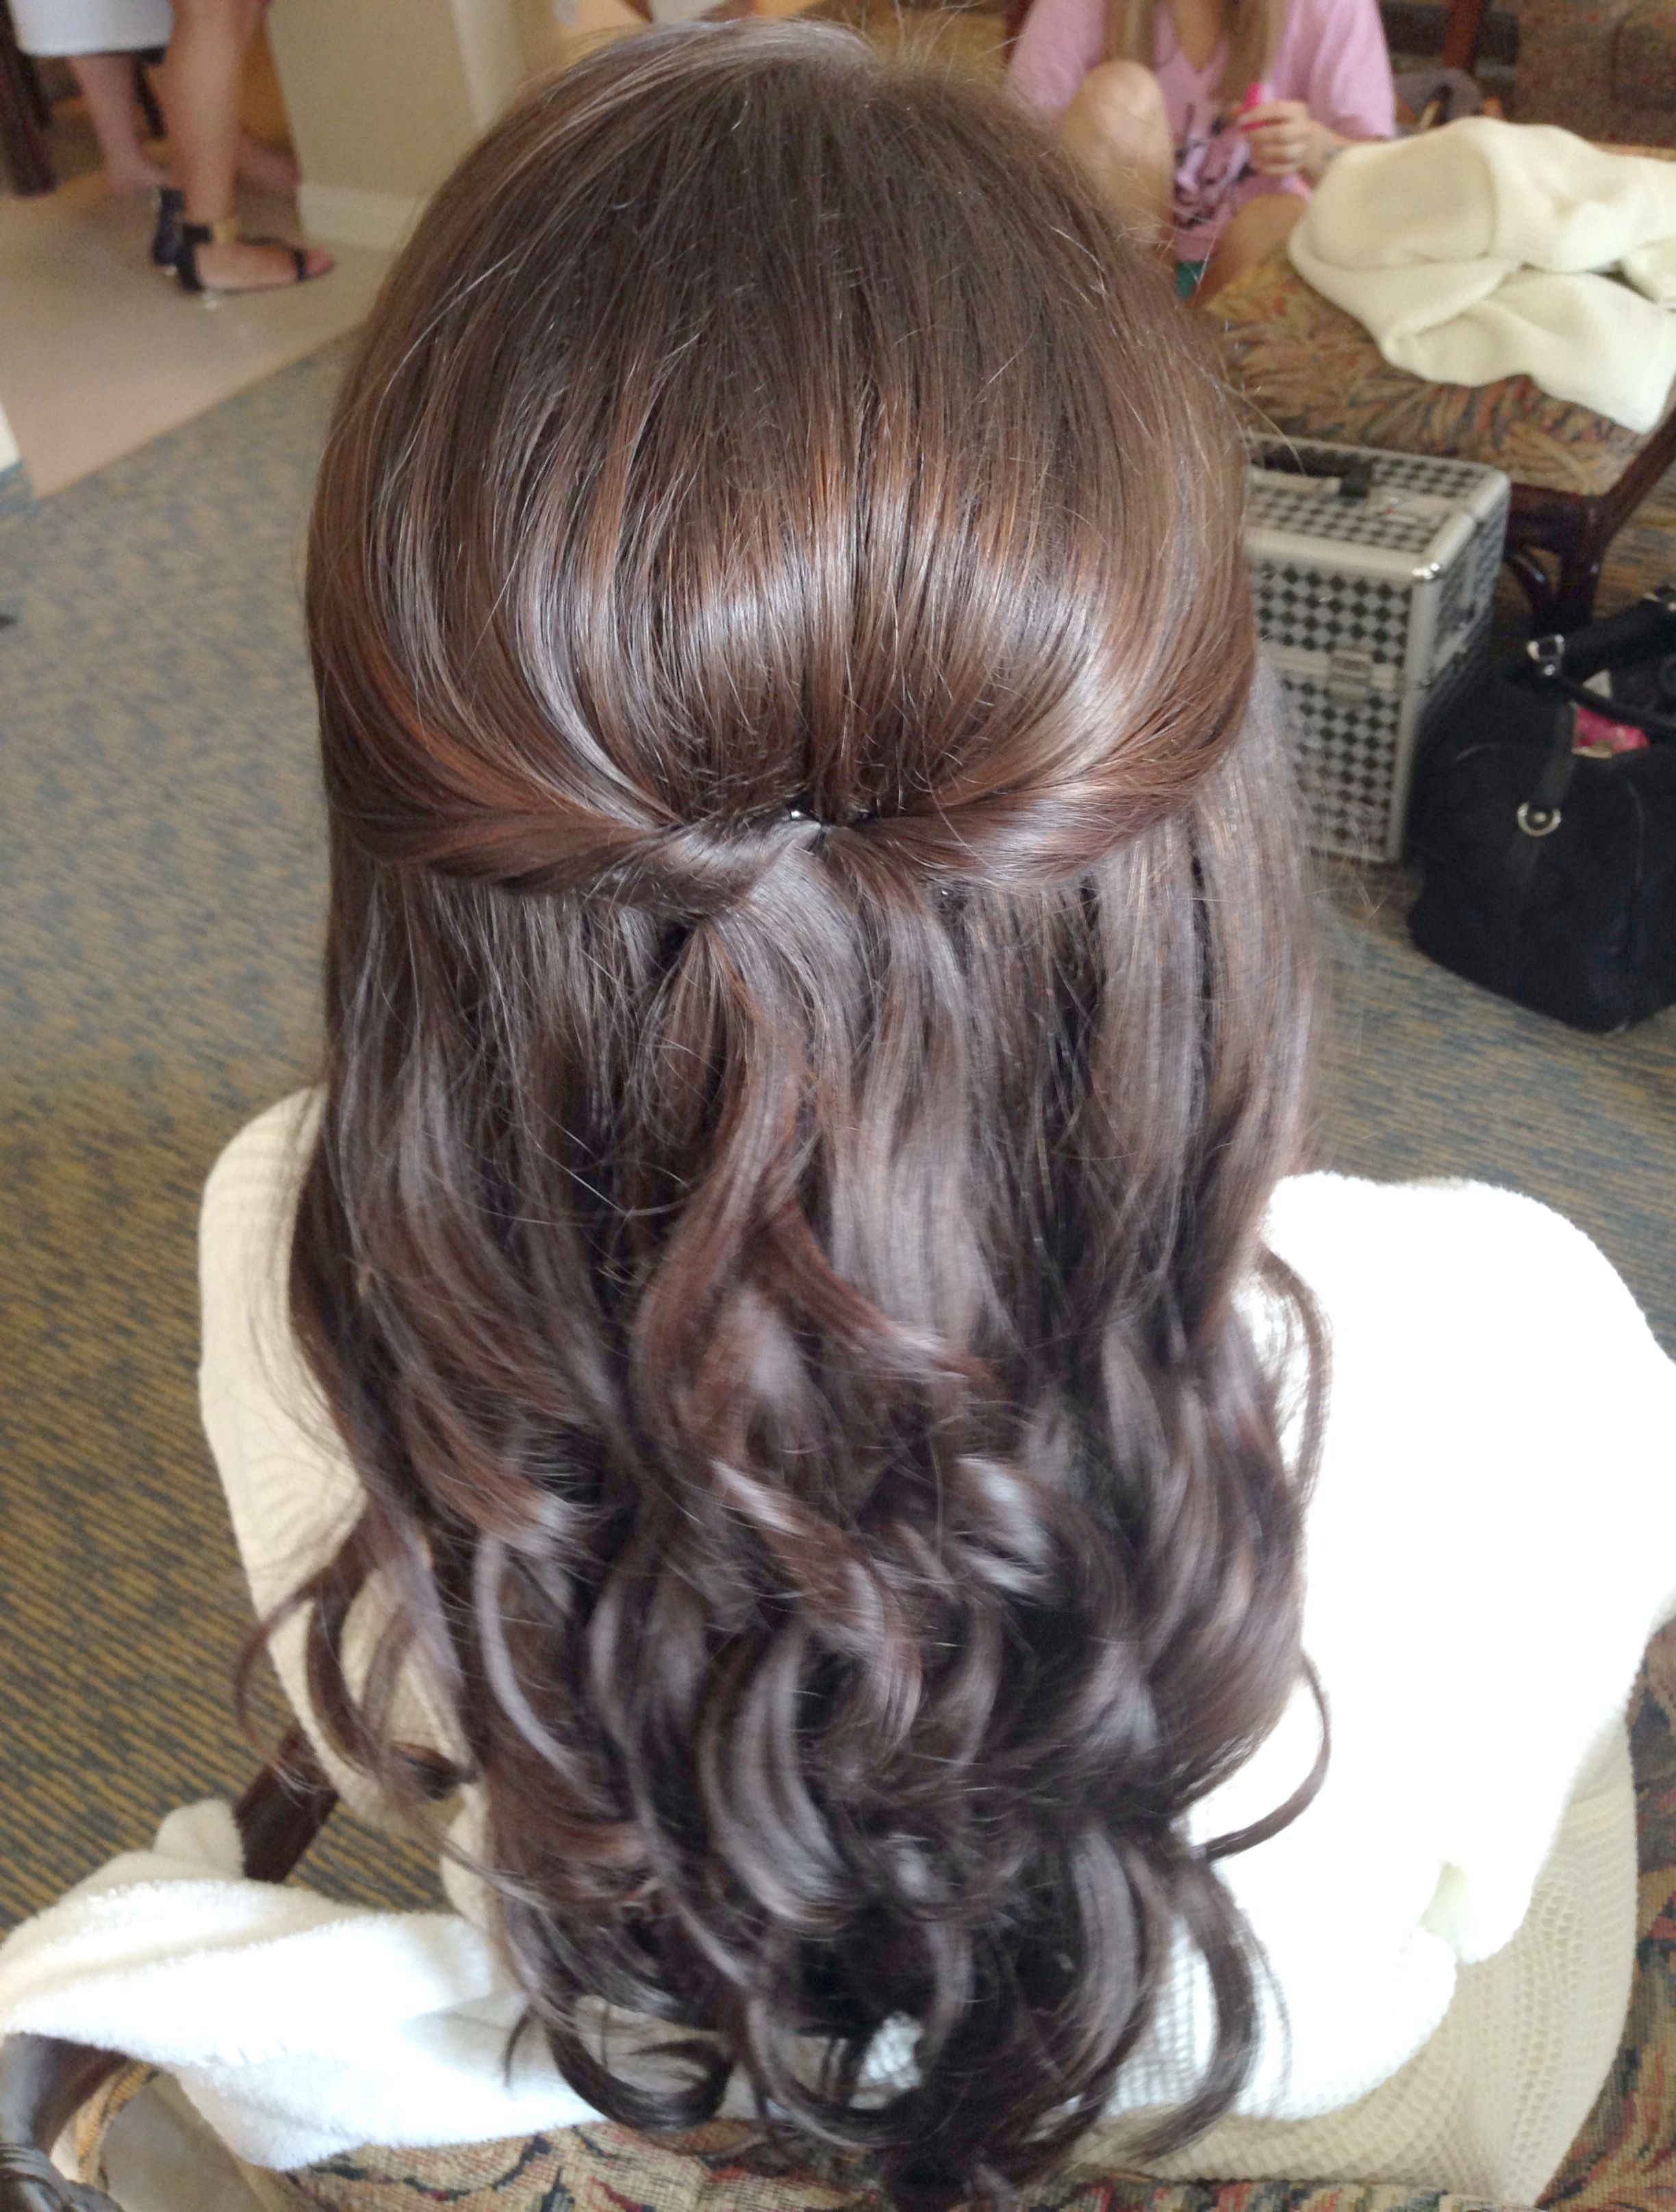 Wedding Hairstyles To Do At Home Simple Wedding Hairstyles Half Up Half Down Weddinghairstyles Medium Hair Styles Hair Styles Long Hair Styles